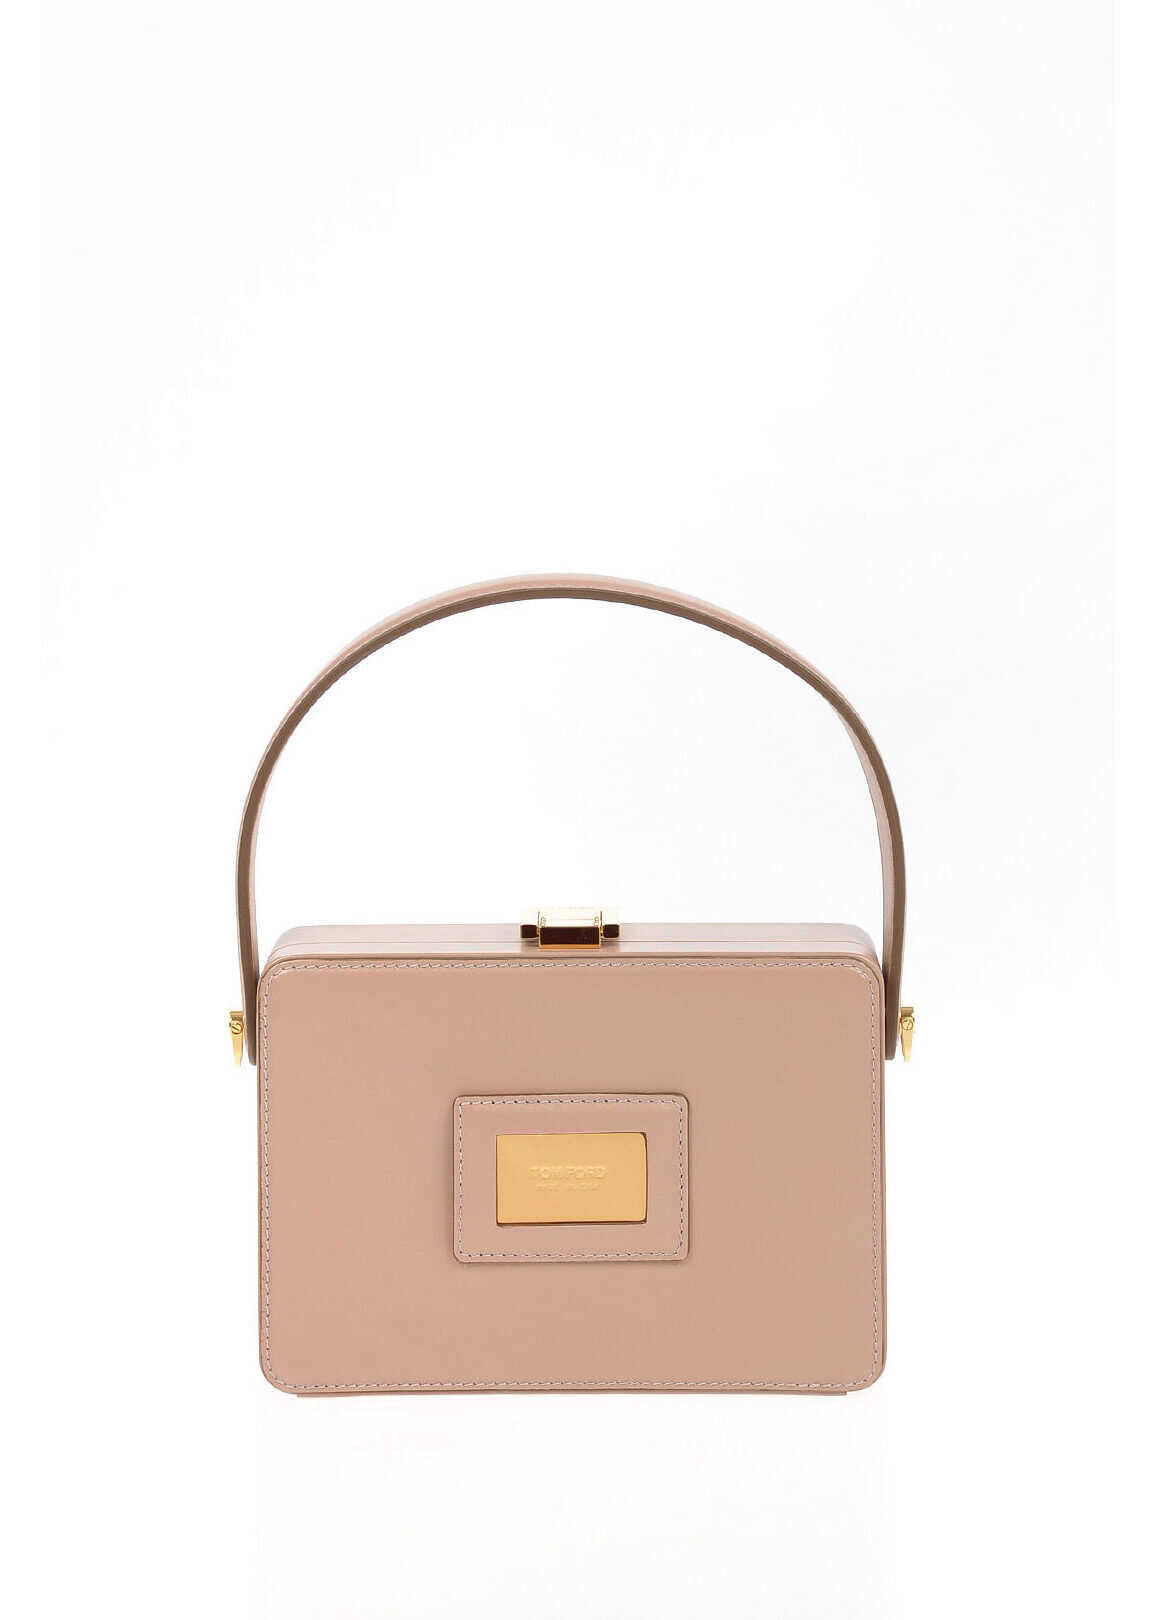 Tom Ford leather FLESH Mini Bag with Removable Shoulder Strap PINK imagine b-mall.ro